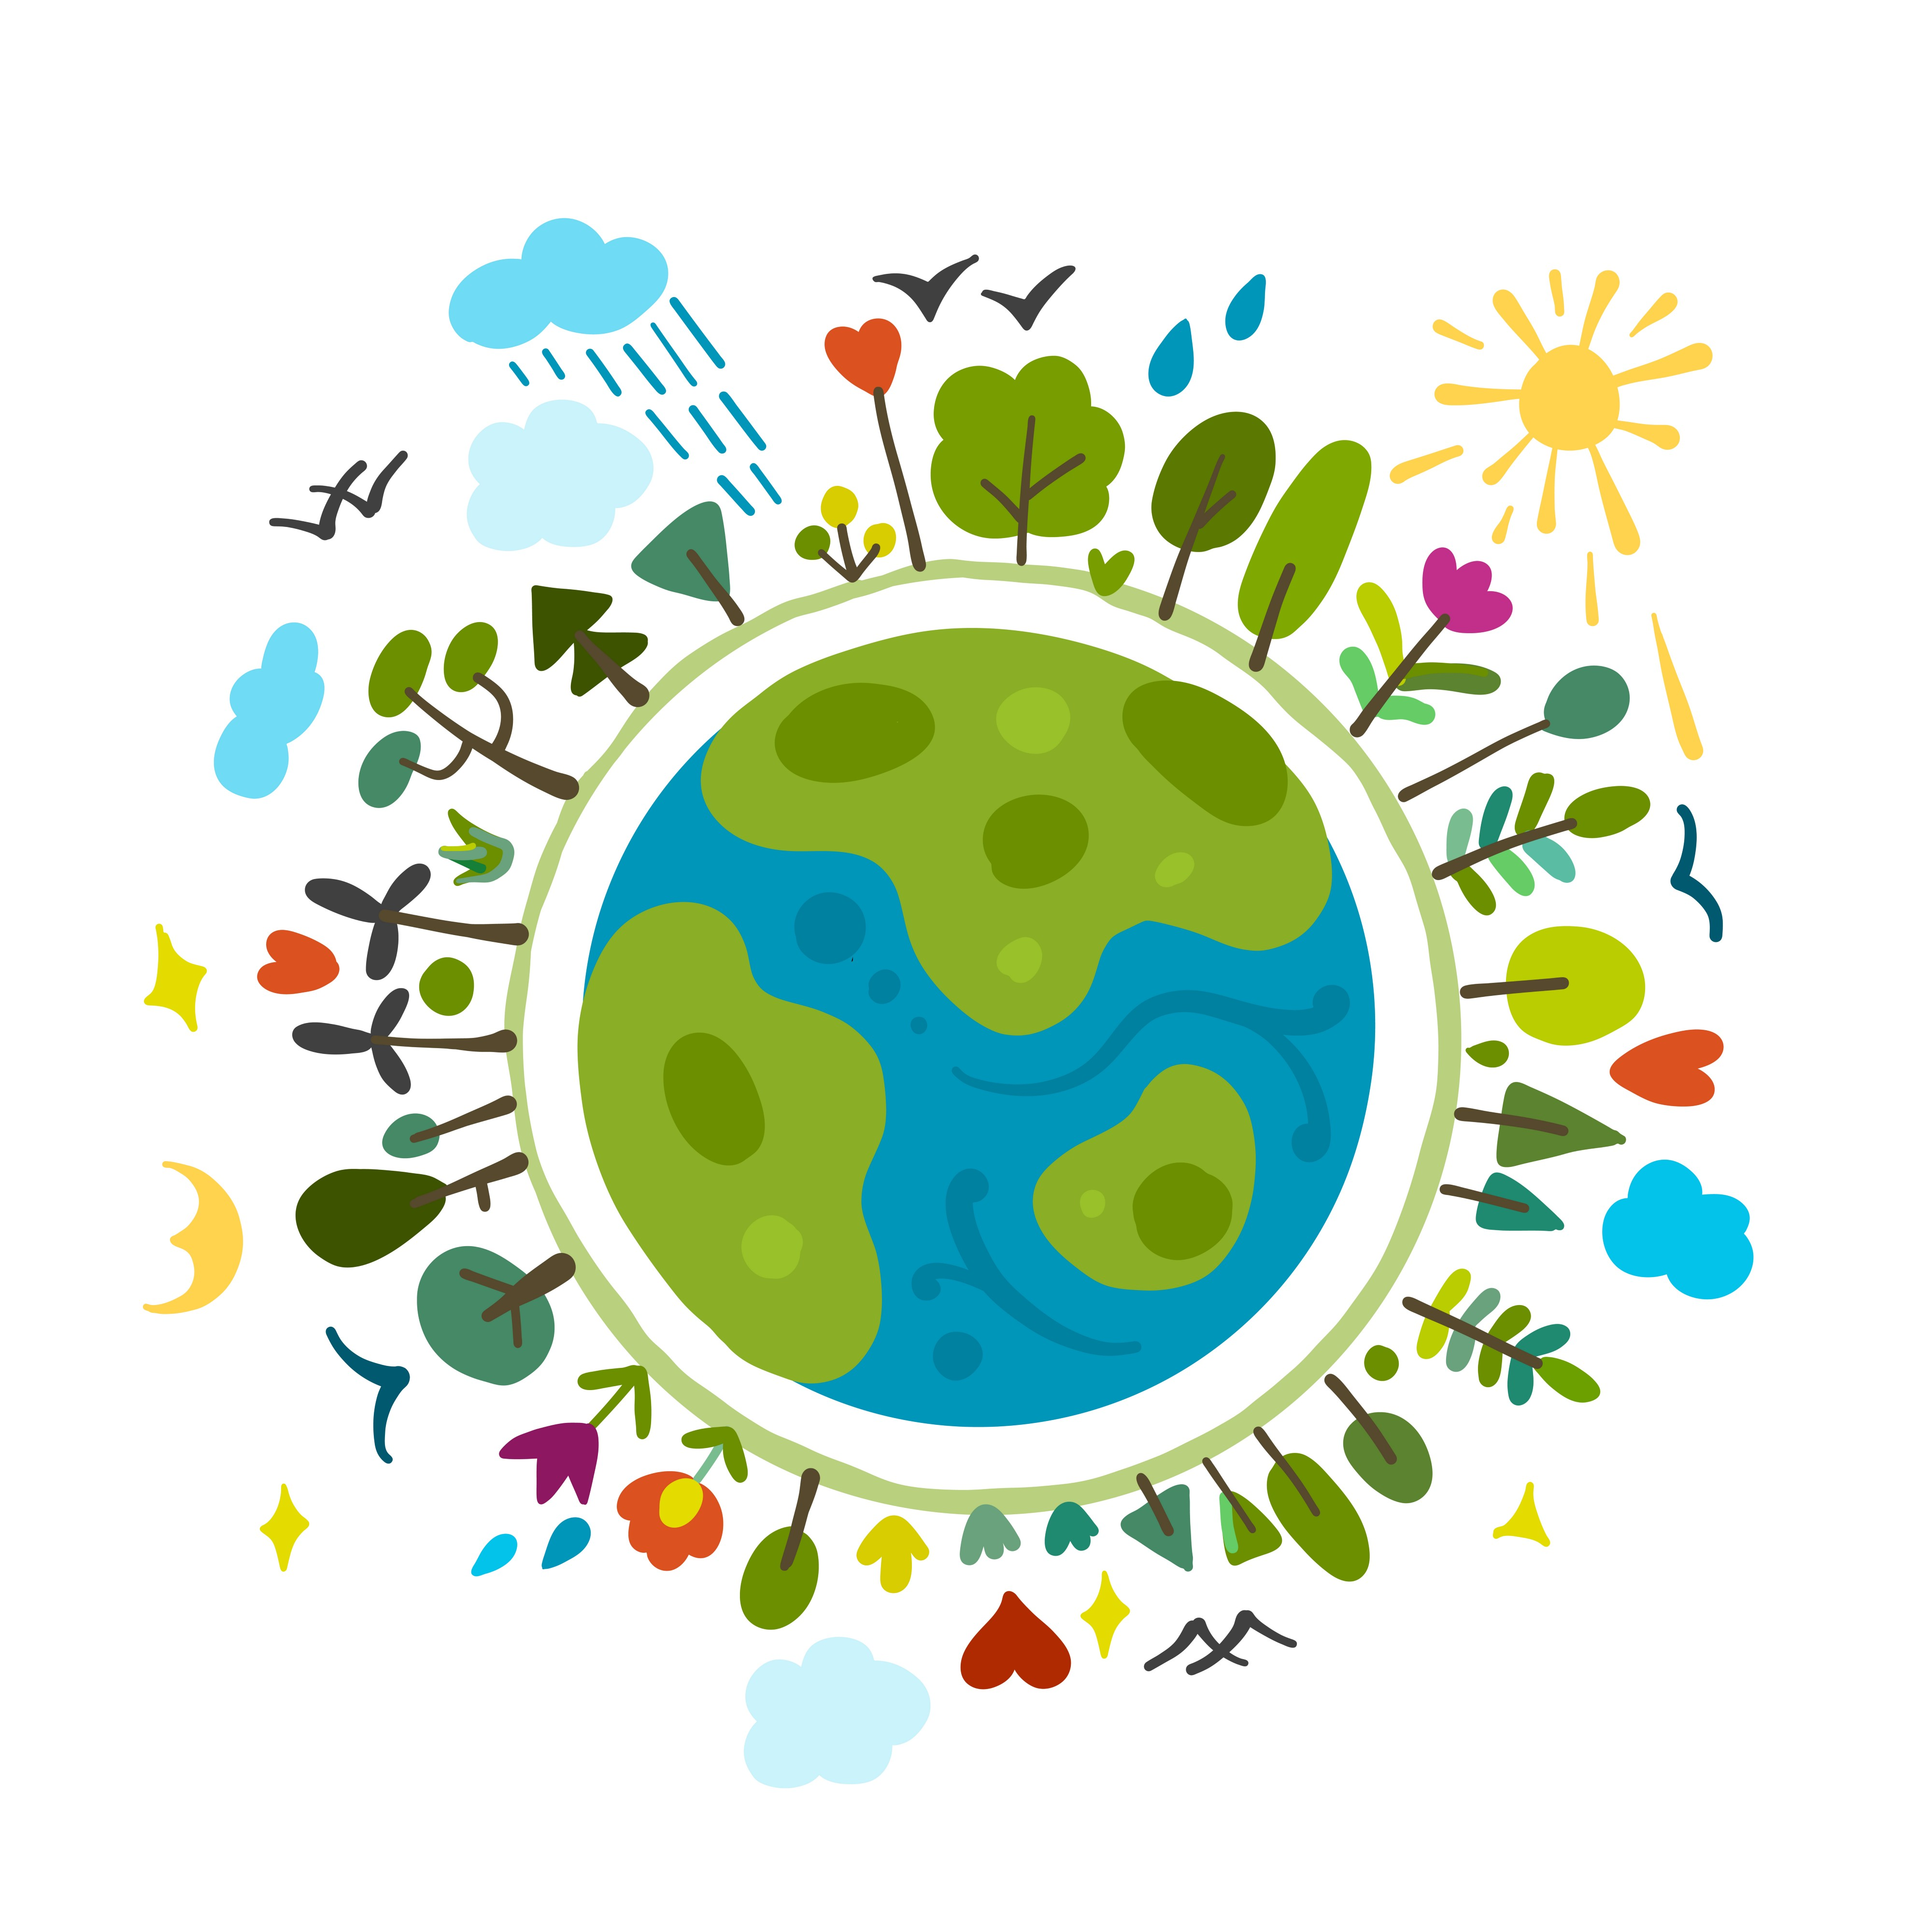 Celebrate Our Environment And Community Join Us For Earth Day Events And Other Events All Month Long By City Of Redwood City Redwood City Voice Medium